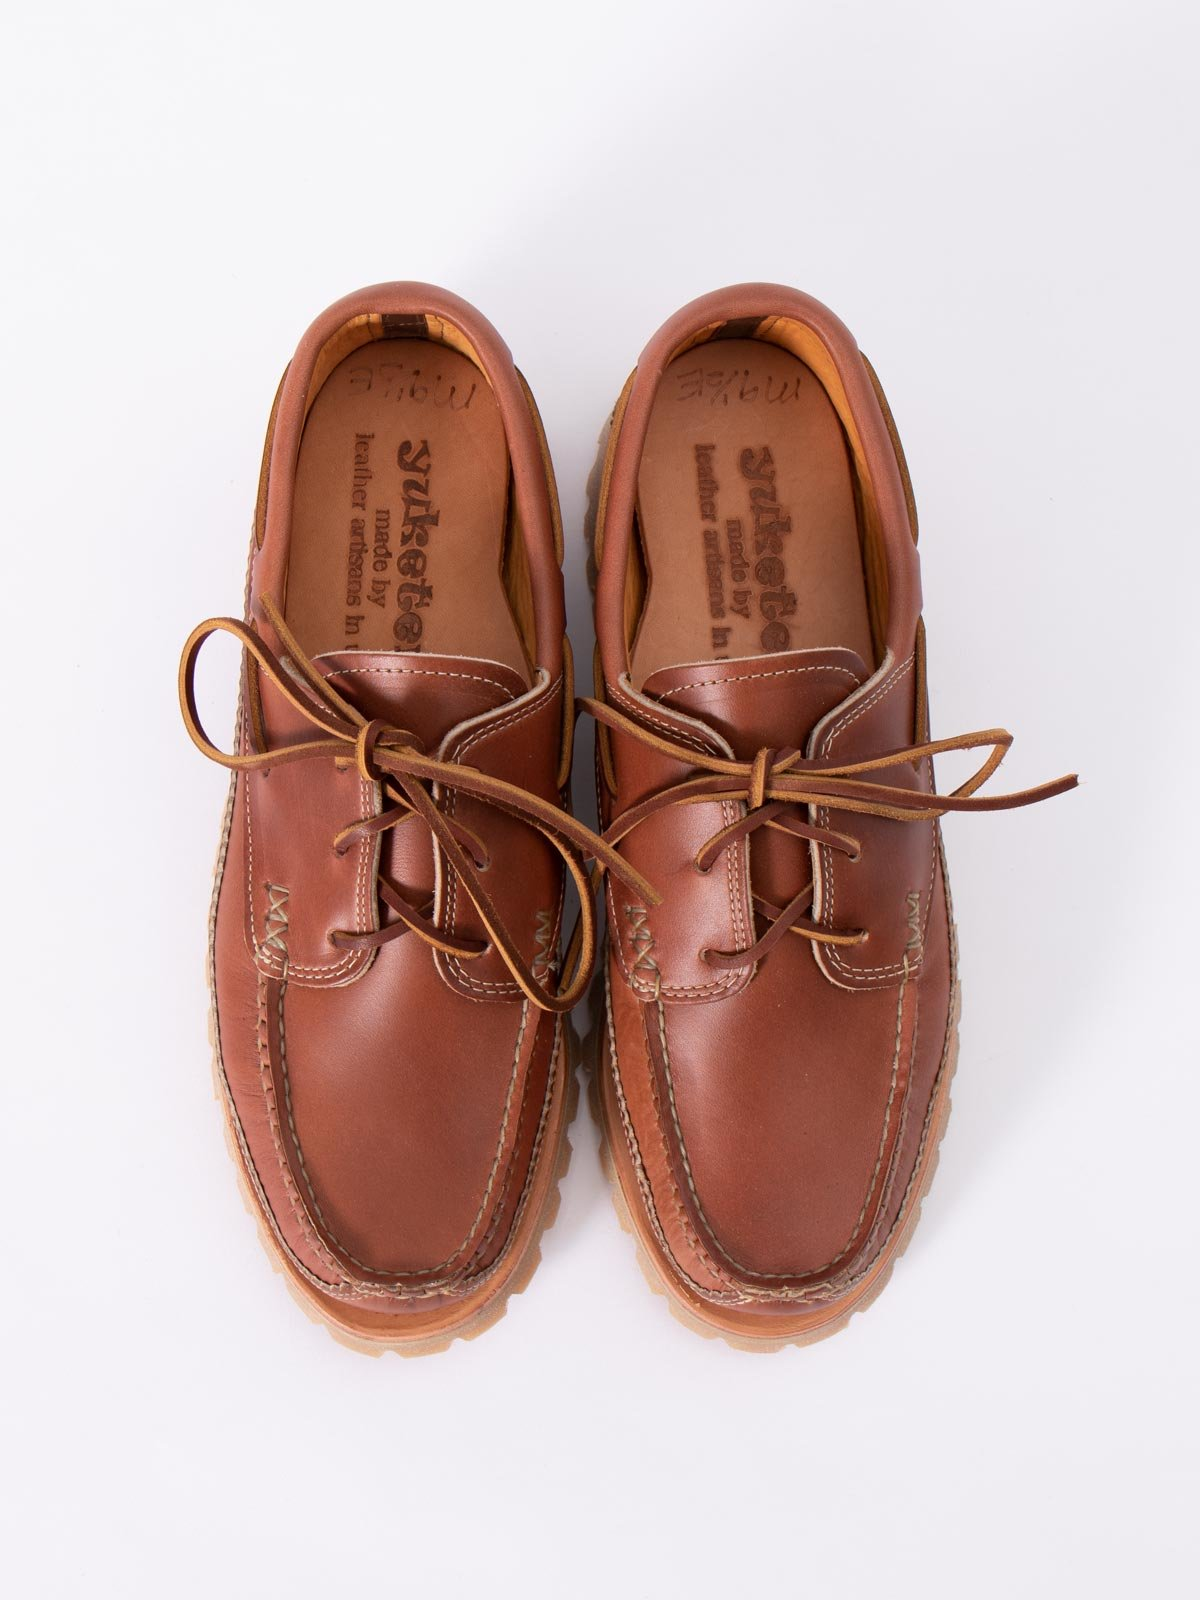 C WHISKEY DB BOAT SHOE W/ LUG SOLE EXCLUSIVE - Image 6